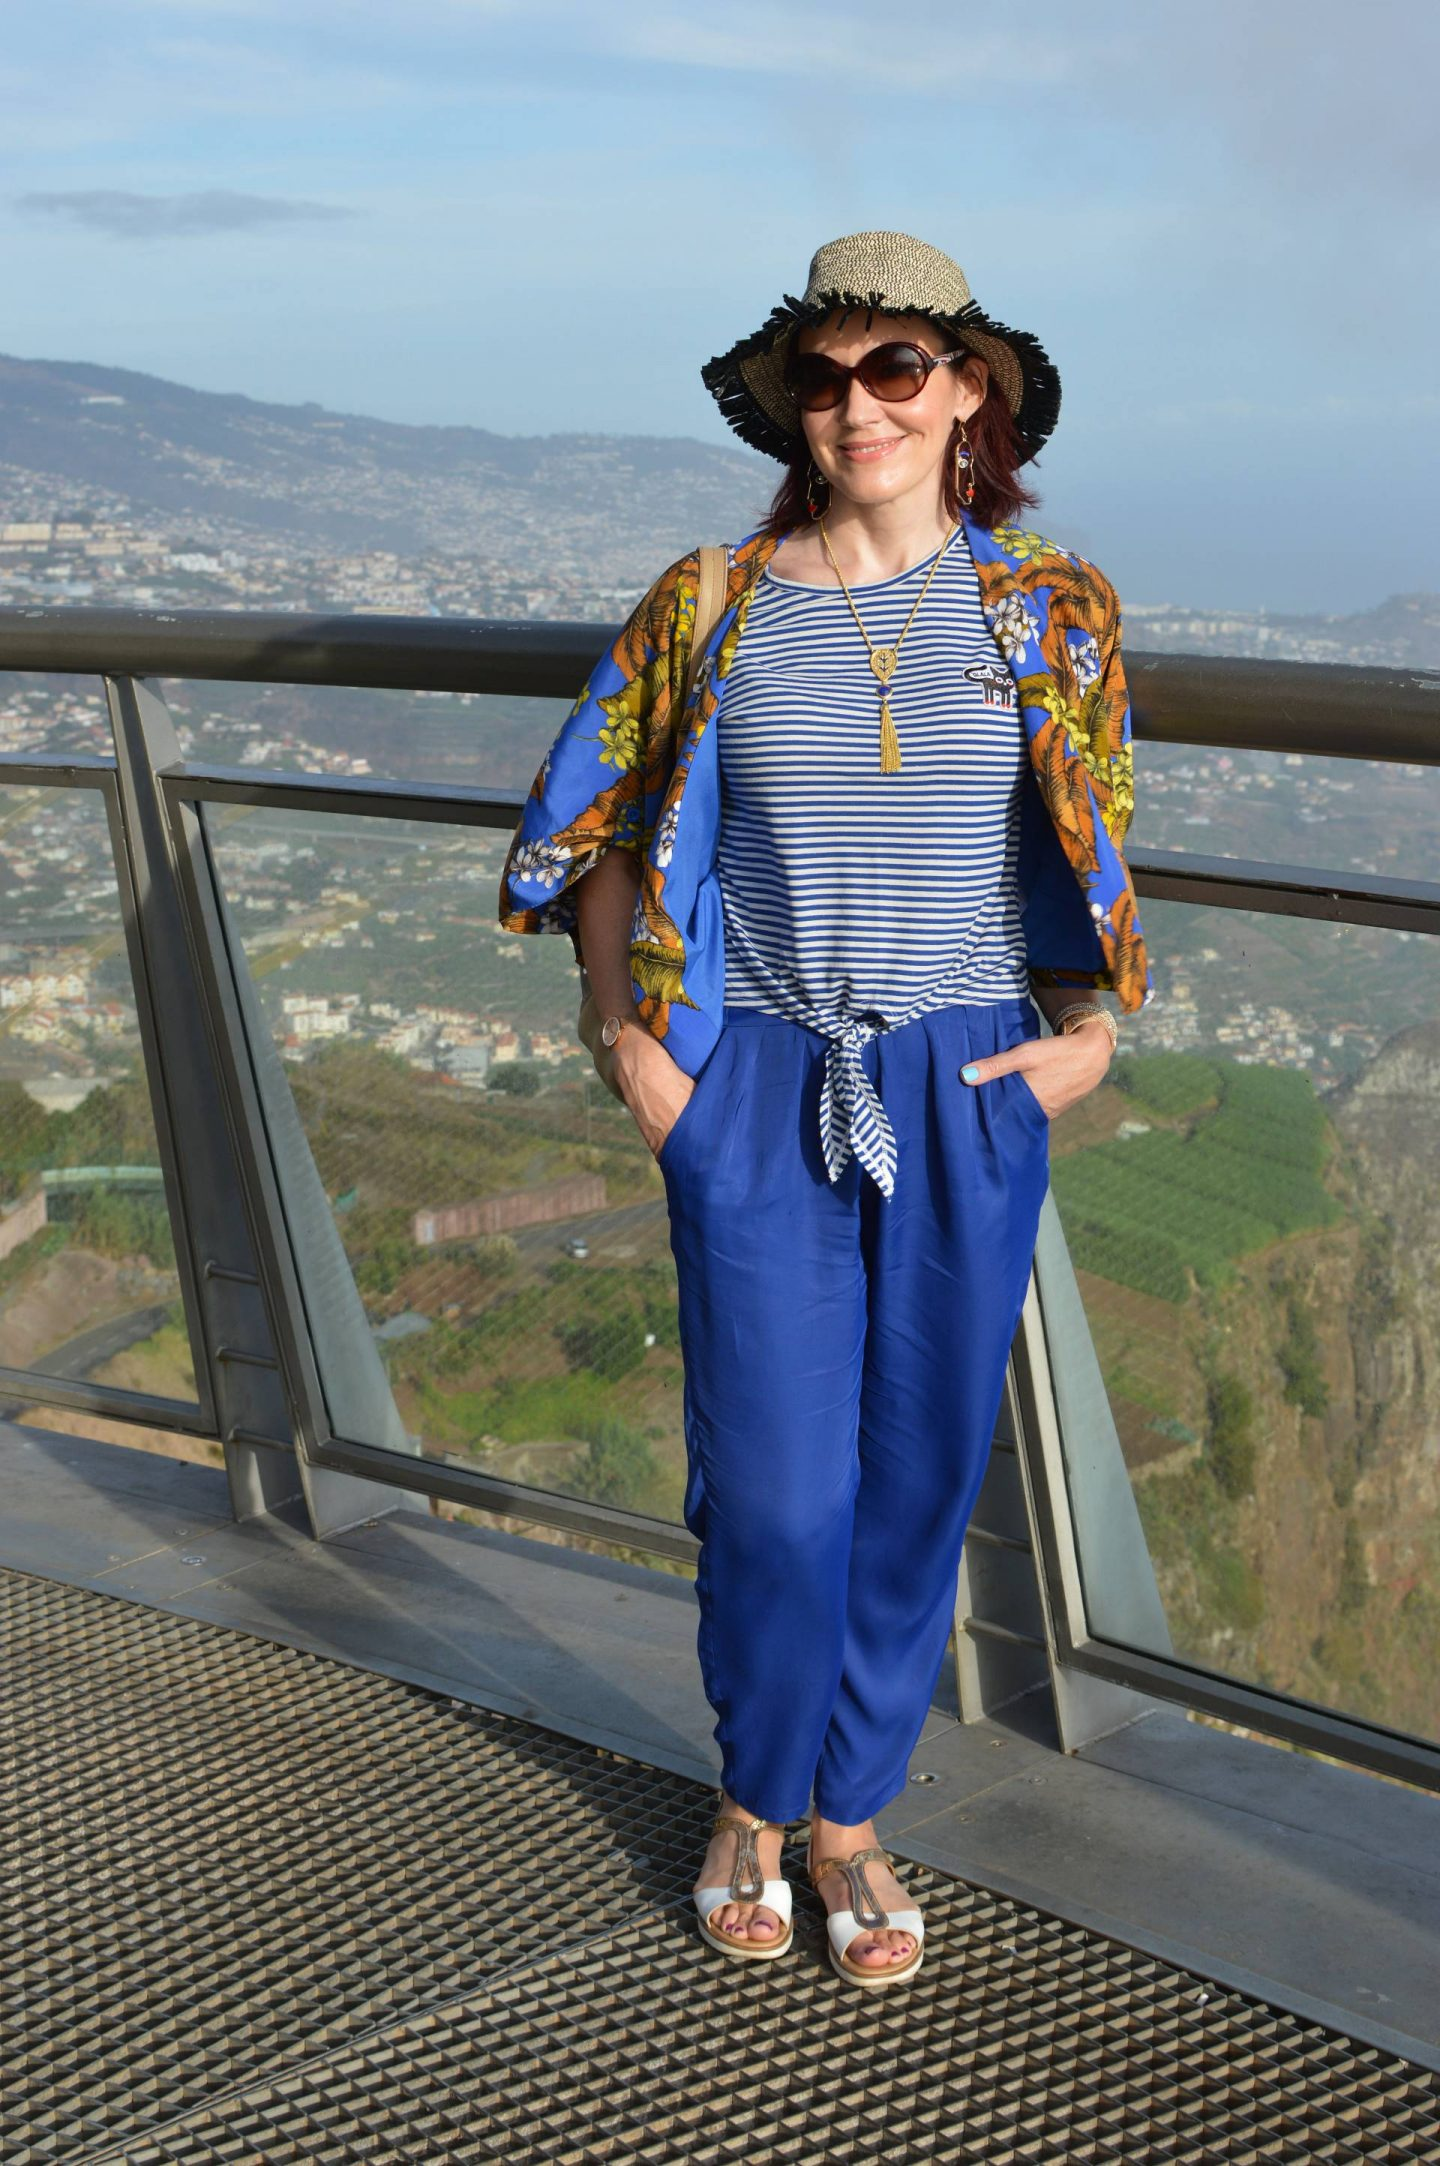 Stripes and Floral Print - Exploring Madeira, Cabo Girão